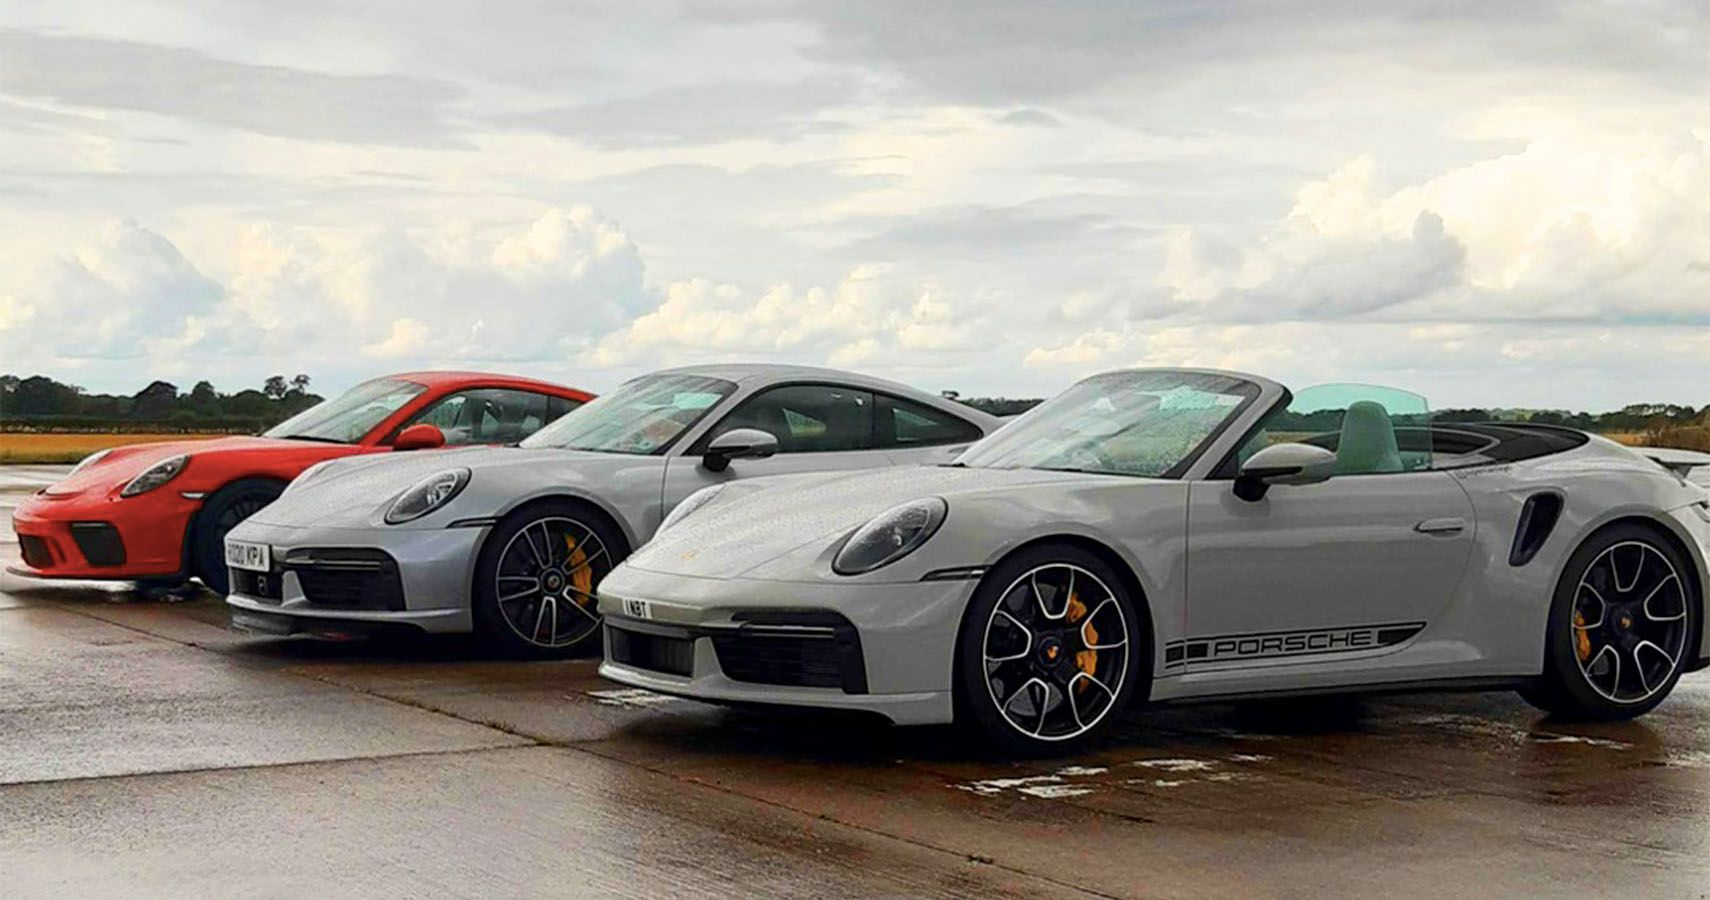 Watch A Porsche GT3 Race A Turbo S Coupe And Cabriolet For Sibling Supremacy